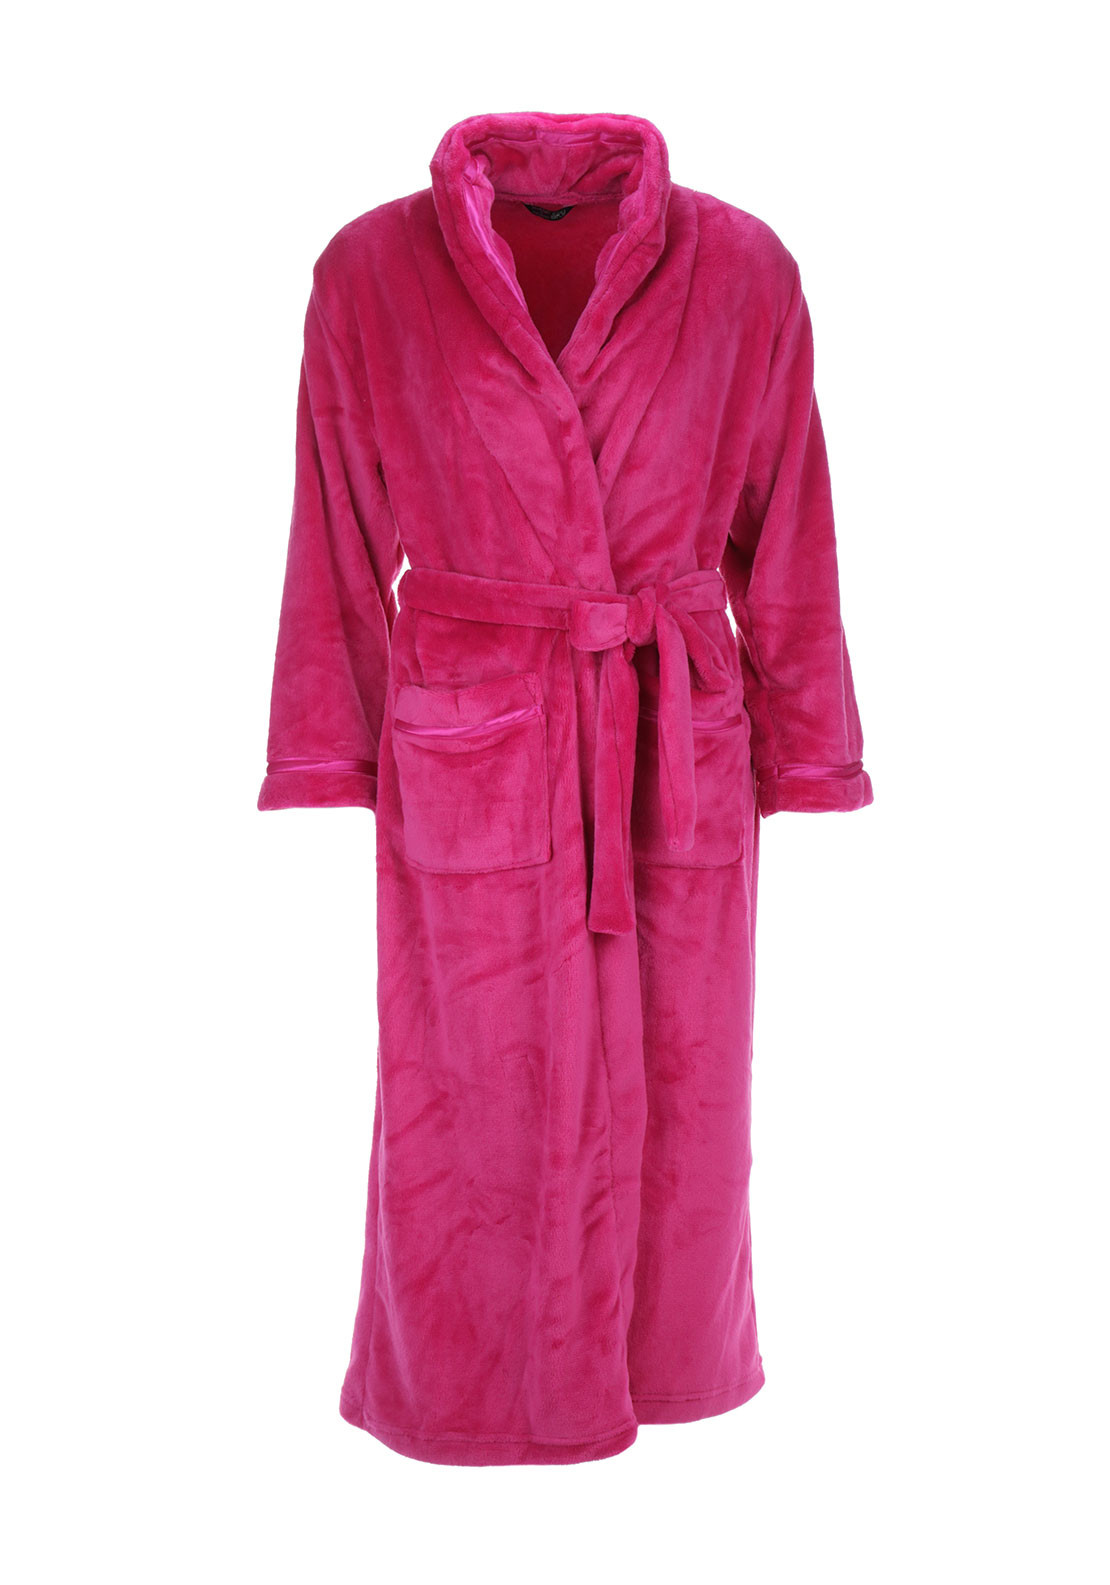 Indigo Sky Wrap Over Terry Dressing Gown, Hot Pink